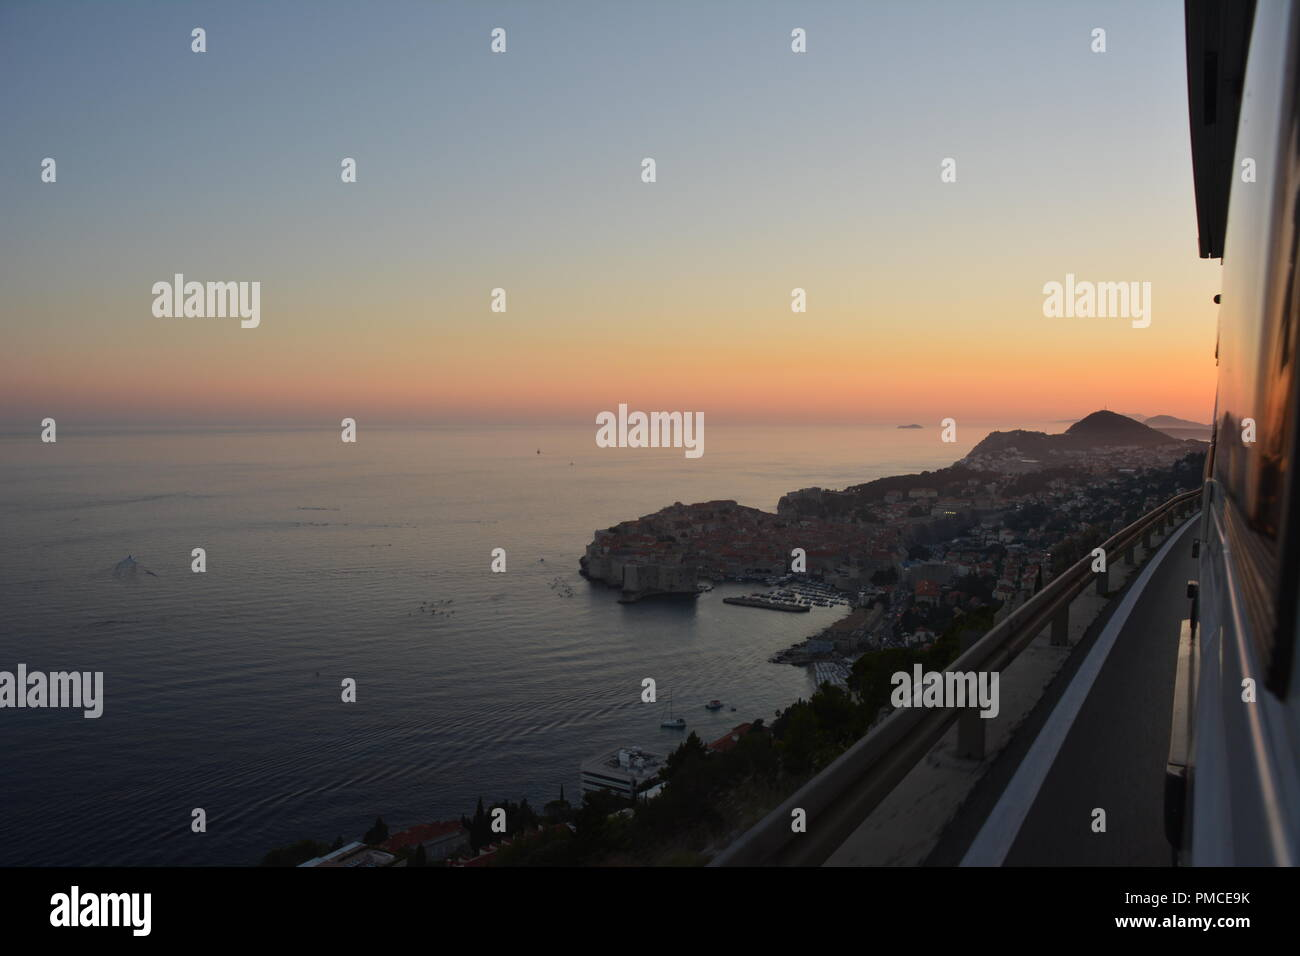 Sunset view above Dubrovnik, Summer 2018, Europe - Stock Image